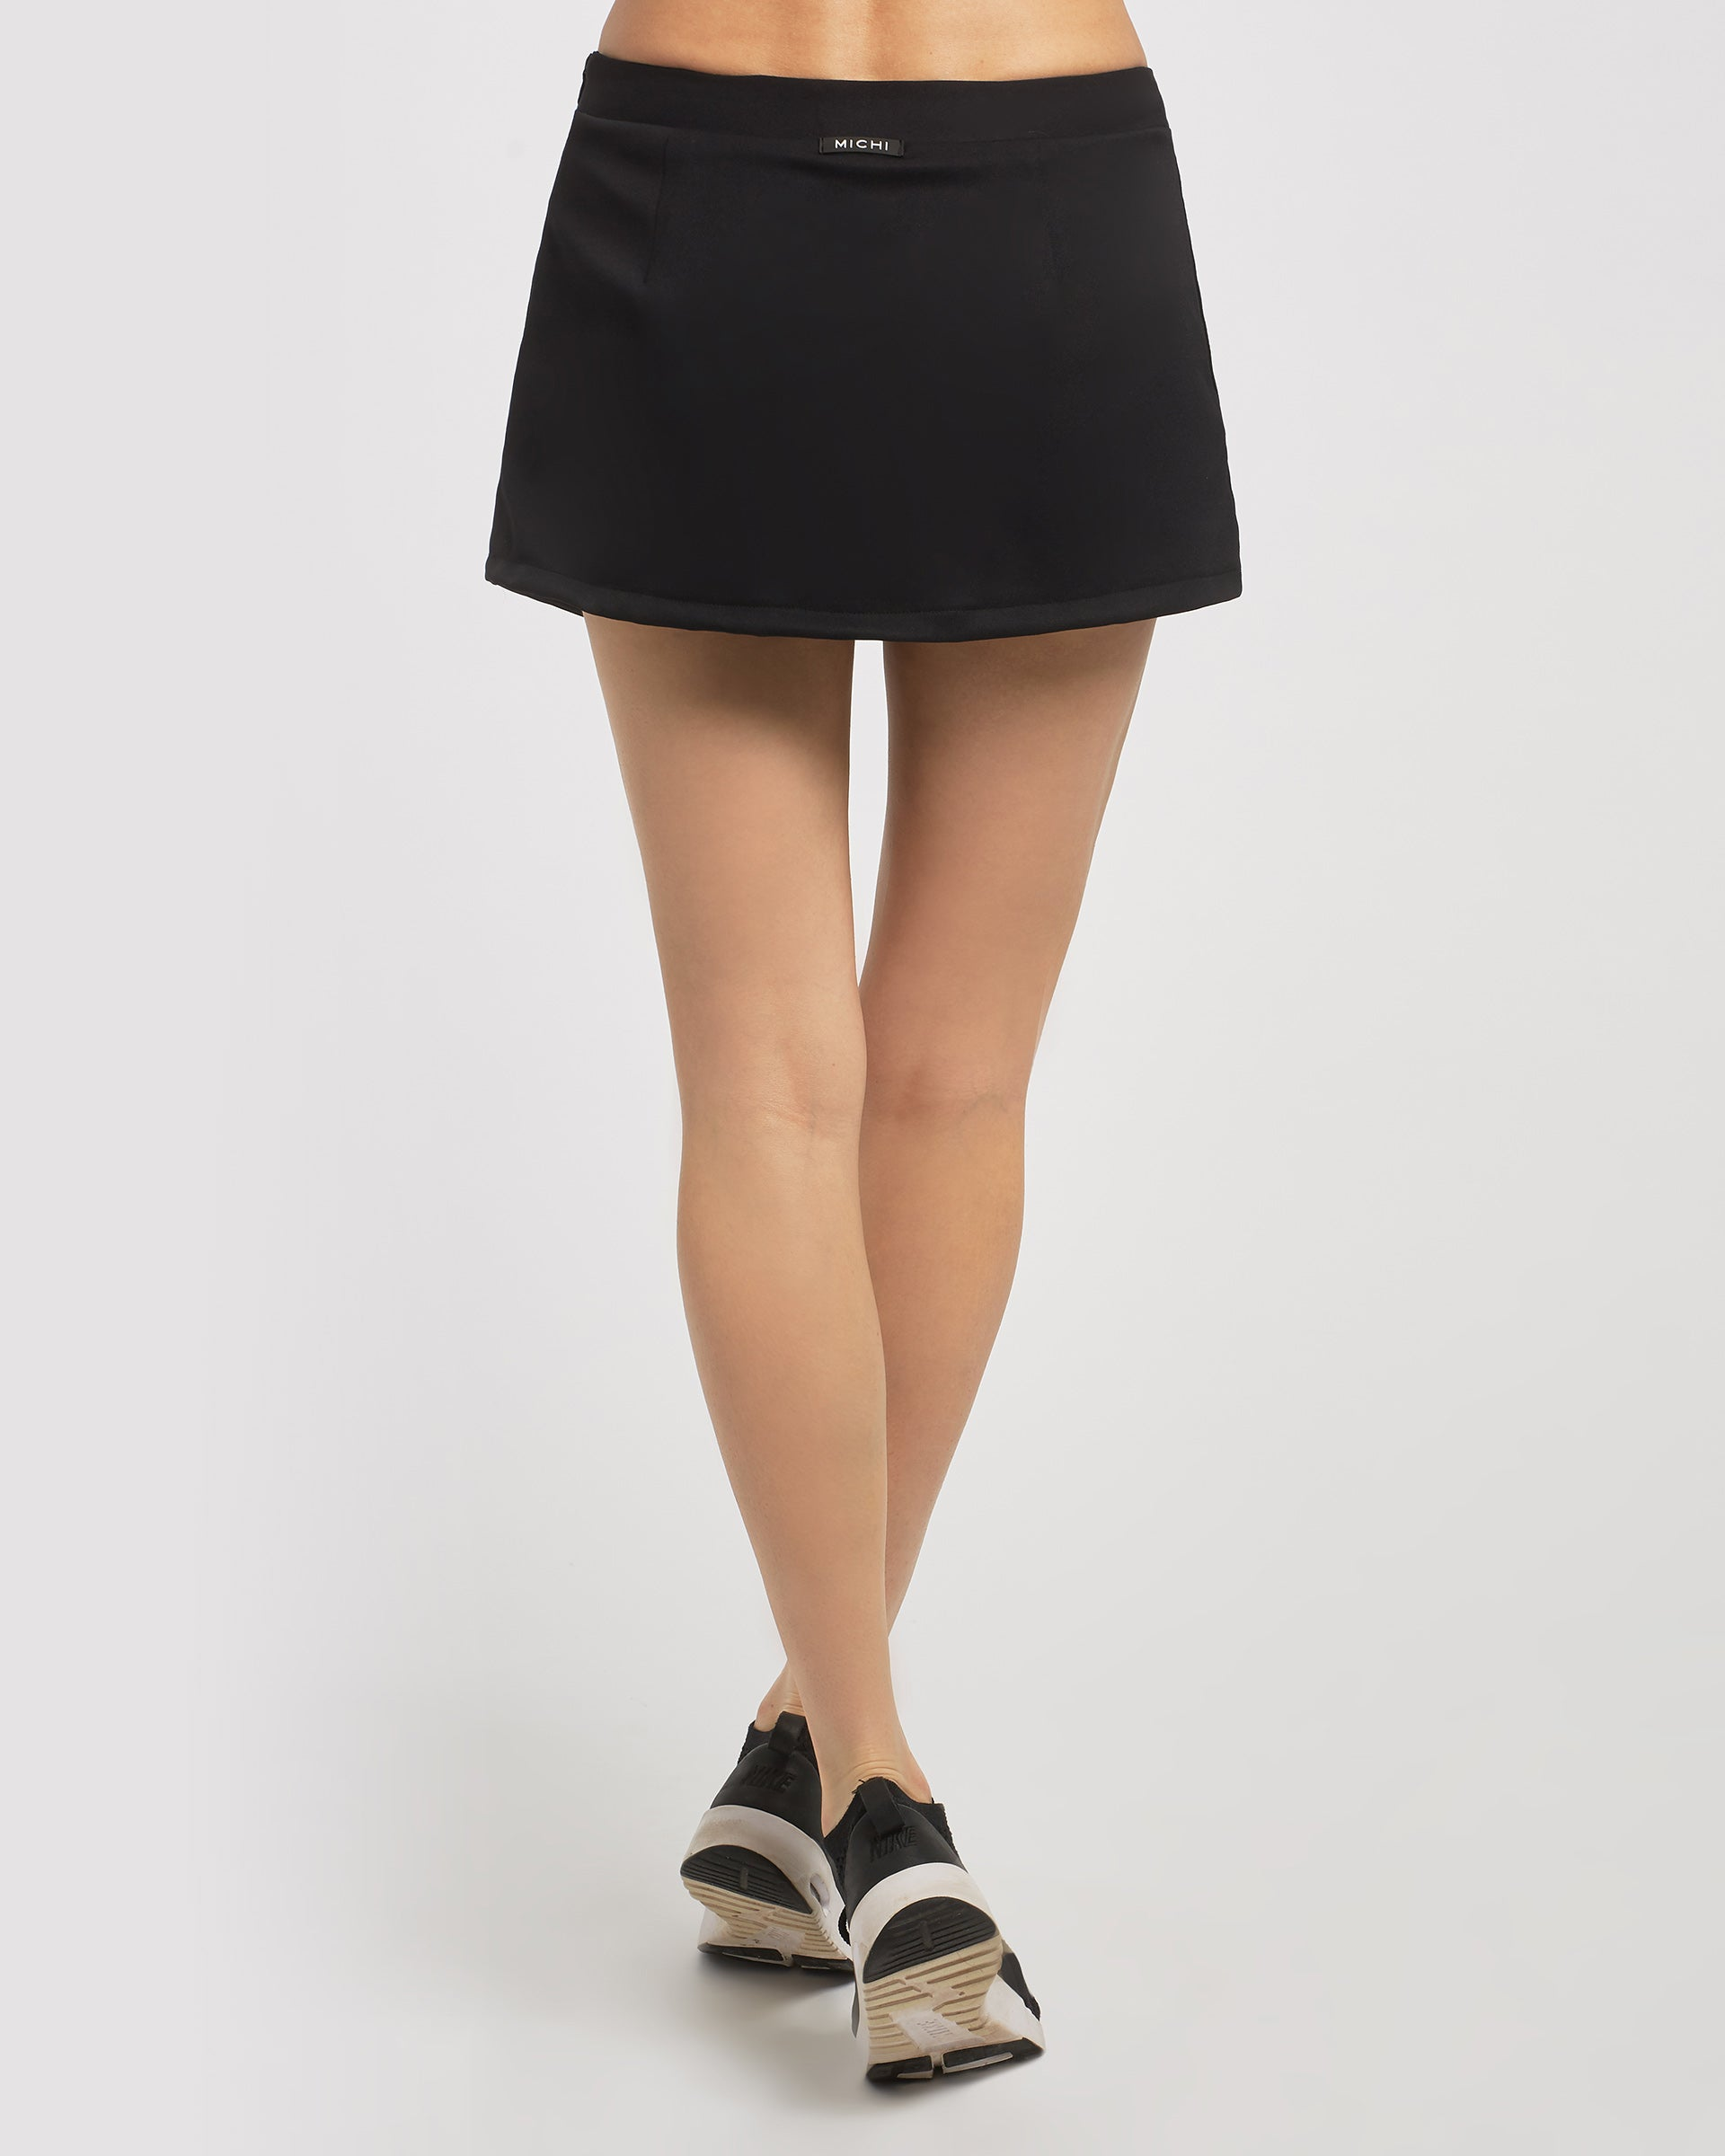 birdie-skirt-black